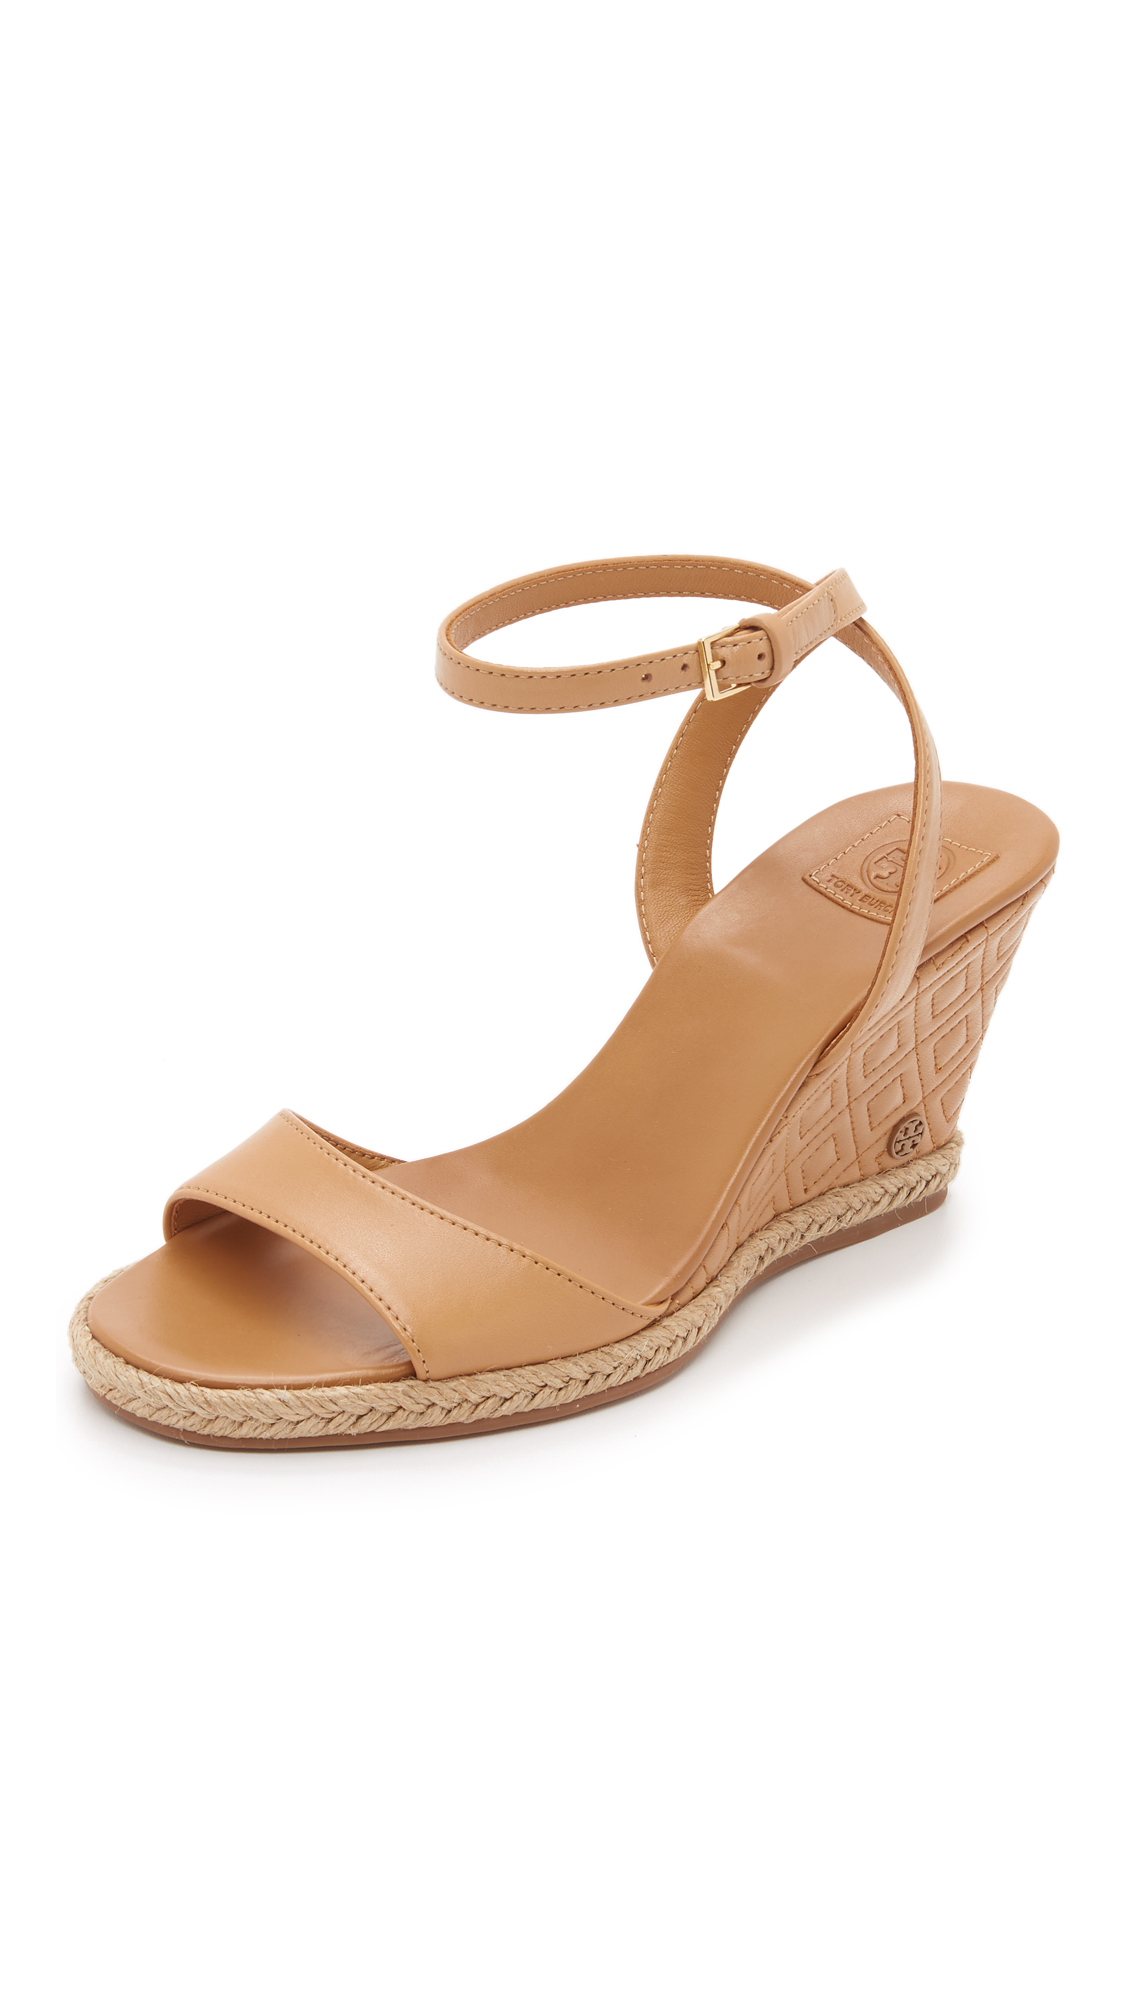 aad65ee9328 Tory Burch Marion Quilted Wedge Sandals